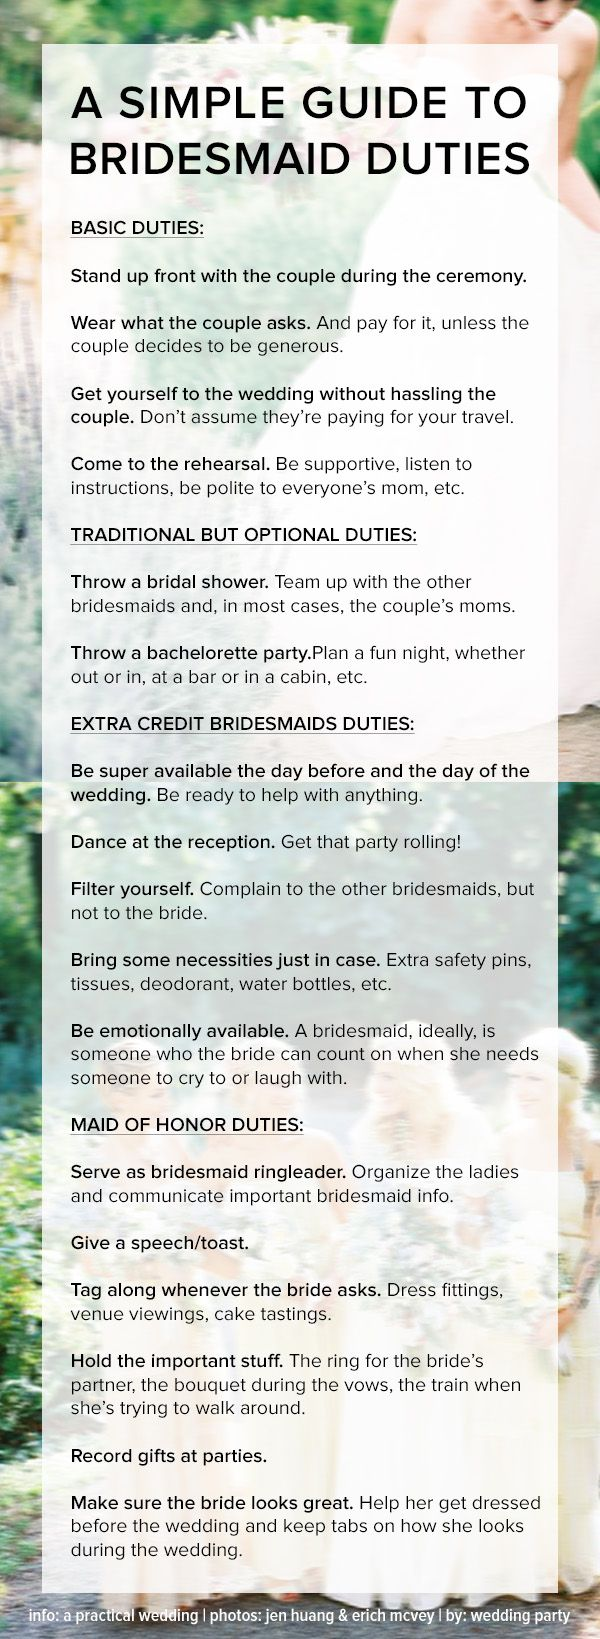 A Simple Guide To Bridesmaids Duties And Etiquette